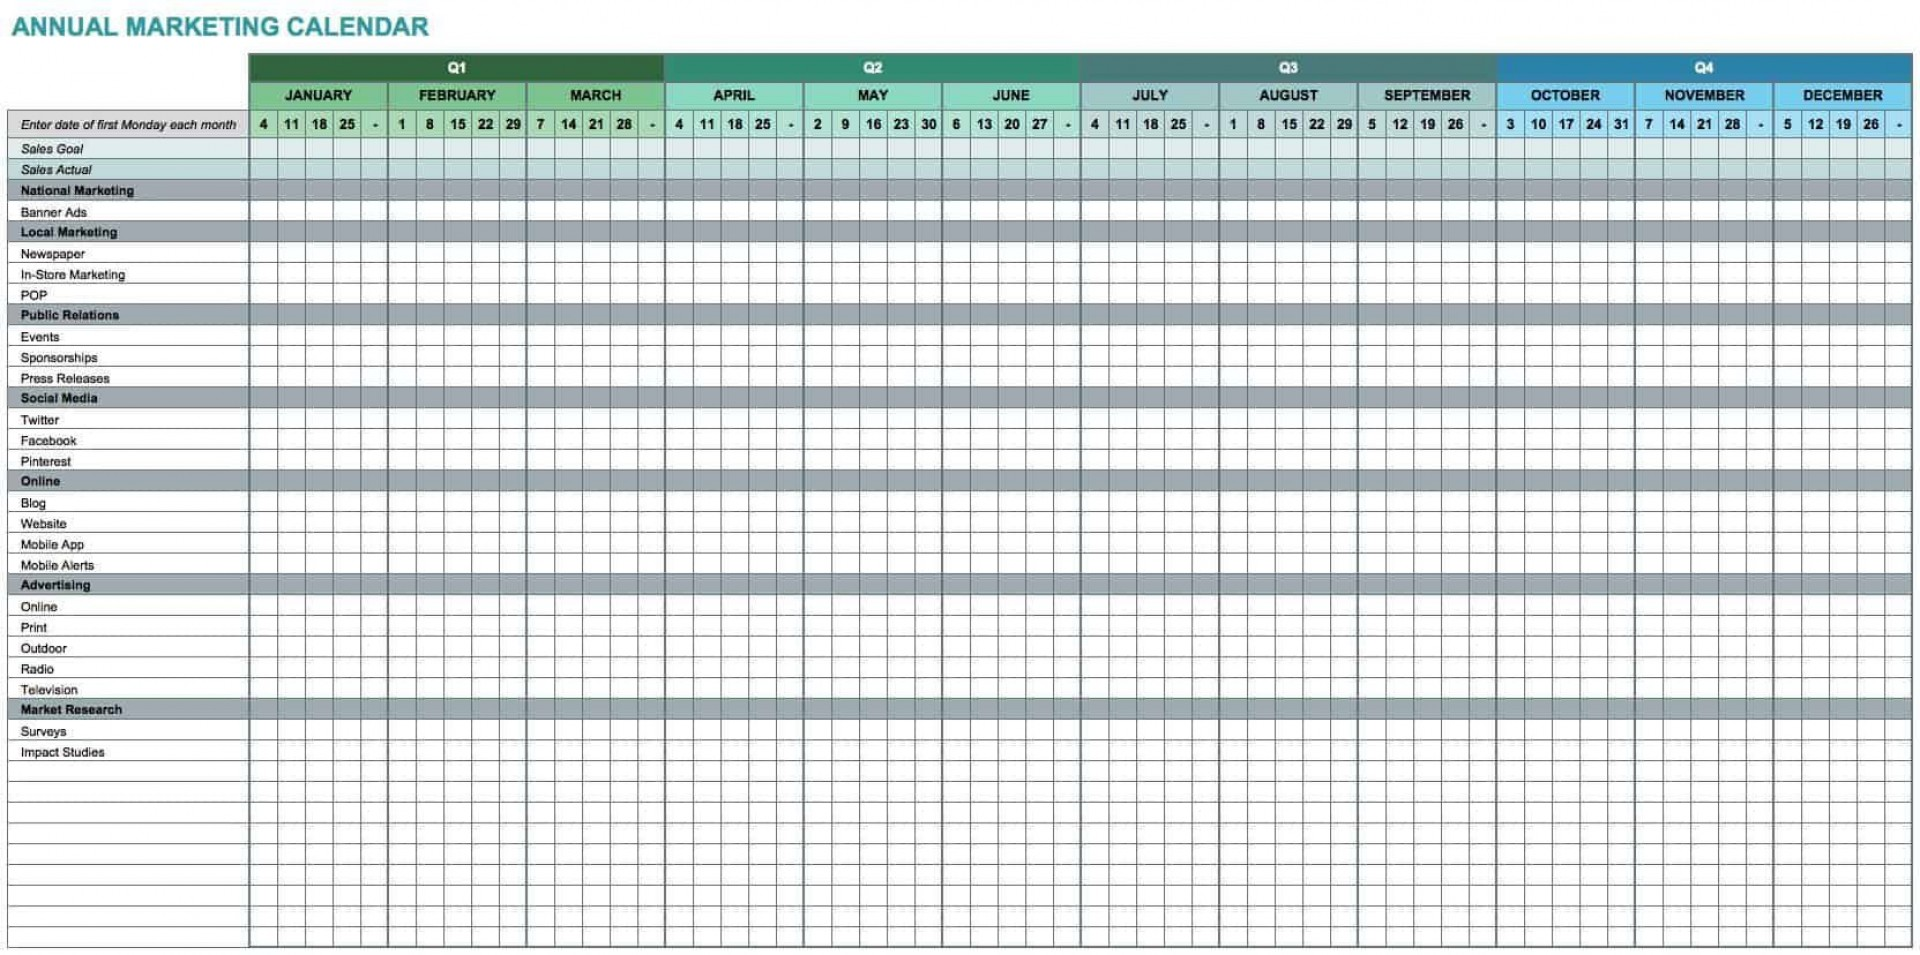 006 Stunning Microsoft Excel Calendar Template Idea  Office 2013 M Yearly 20191920